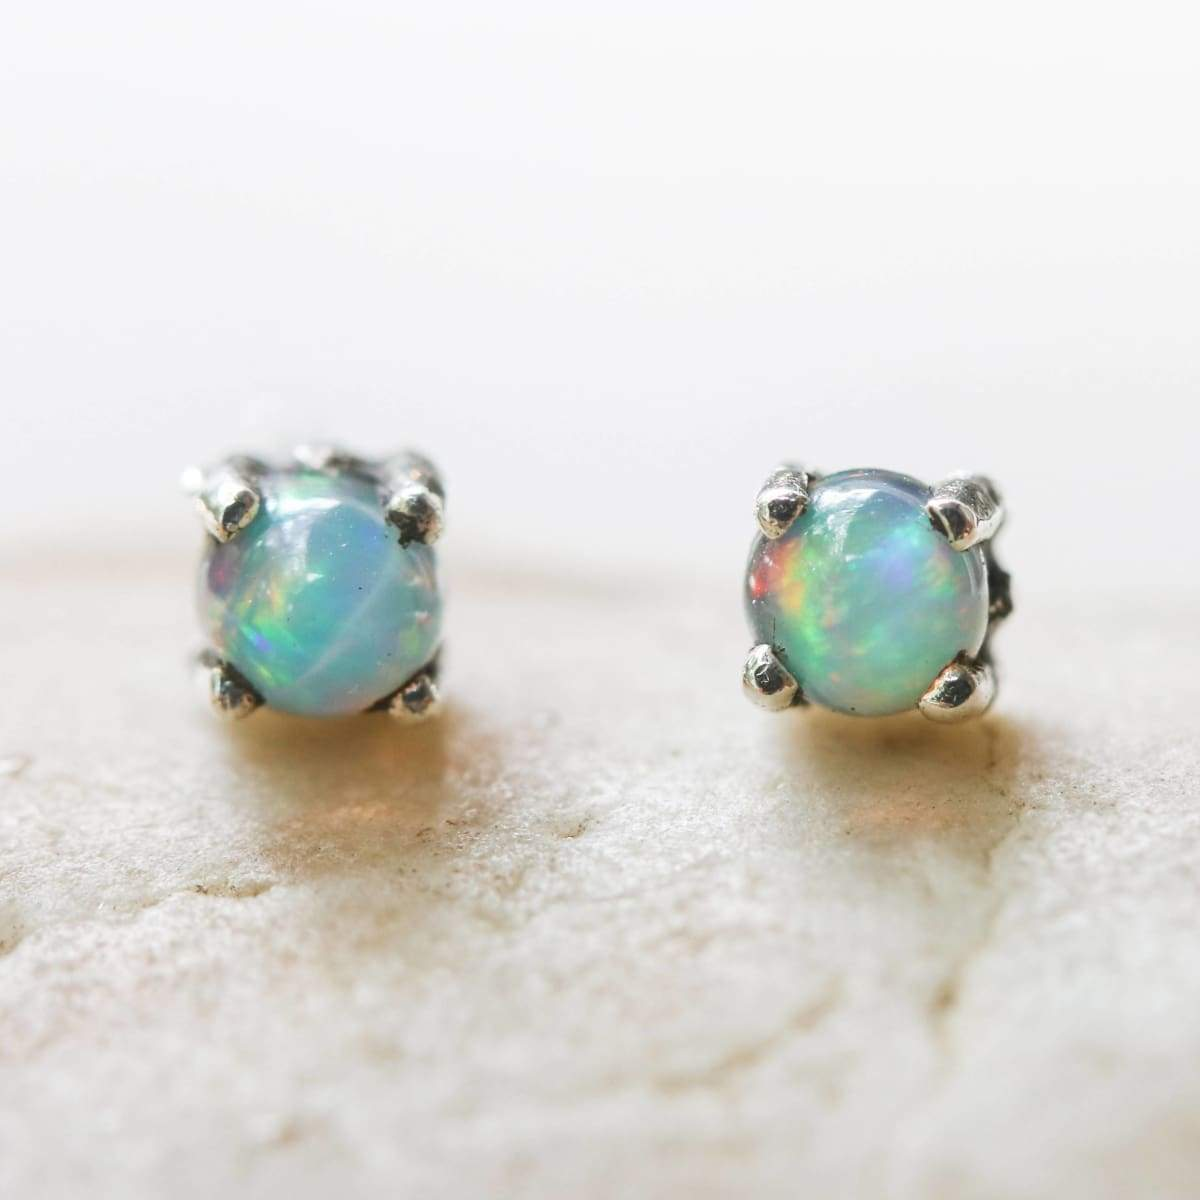 Earrings Sterling silver stud earrings with opal cabochon in prongs setting sterling post and backing